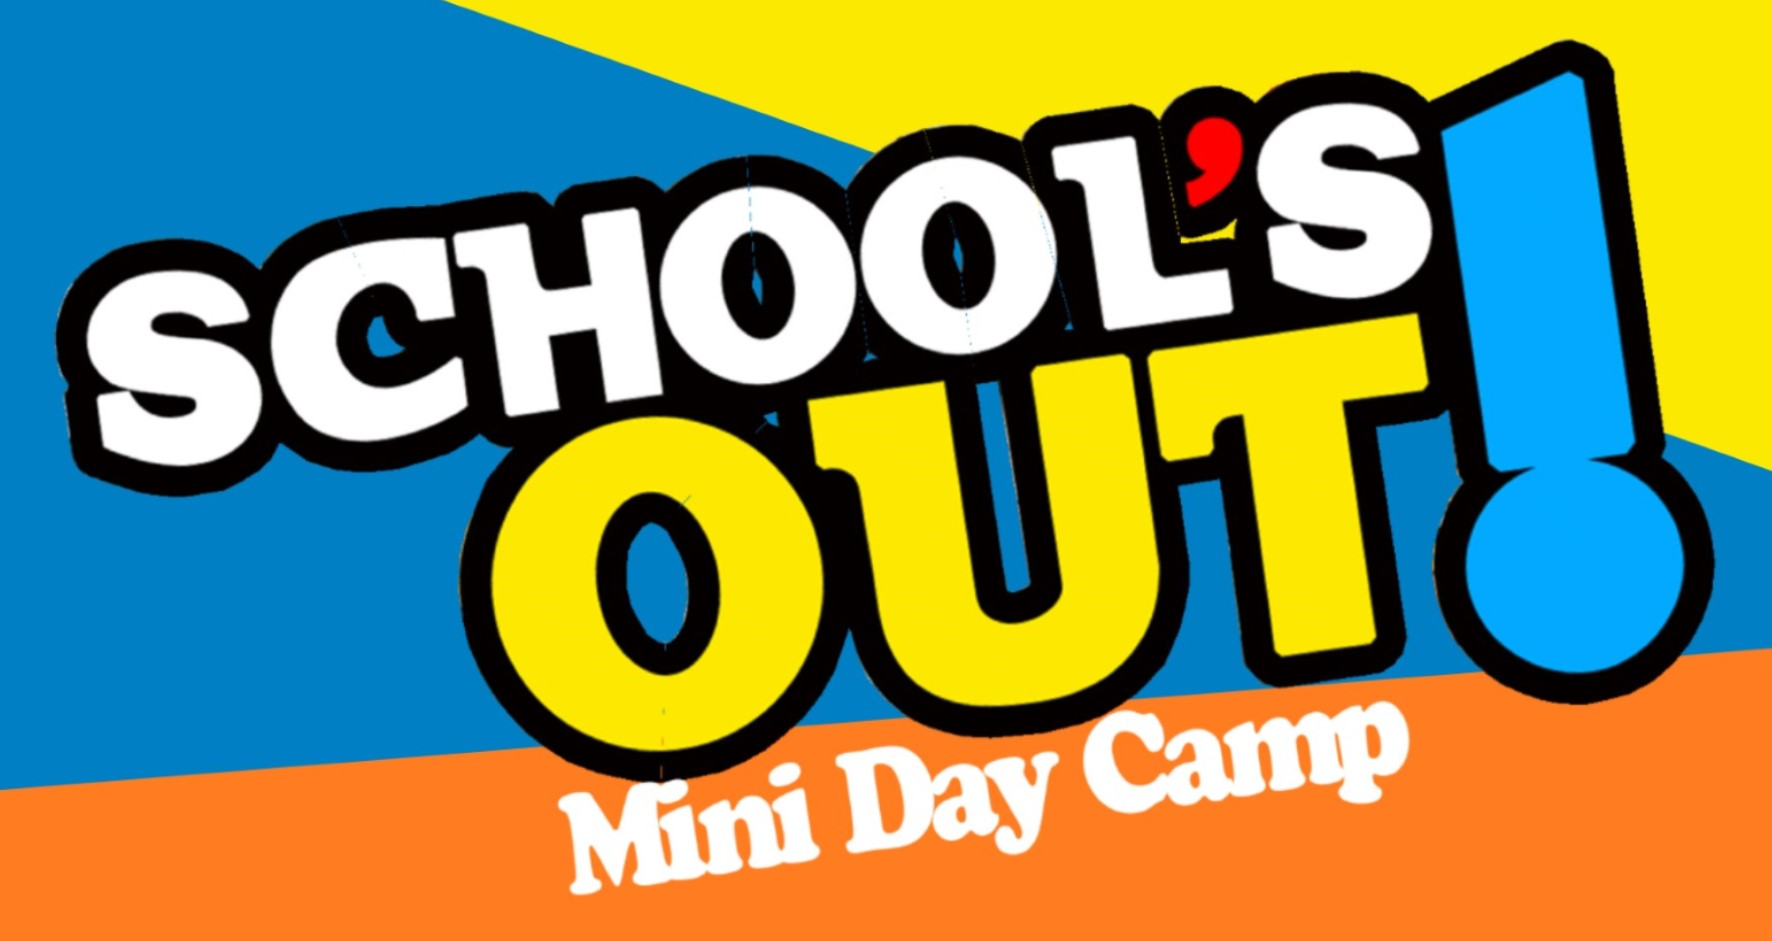 School Day Out Camp